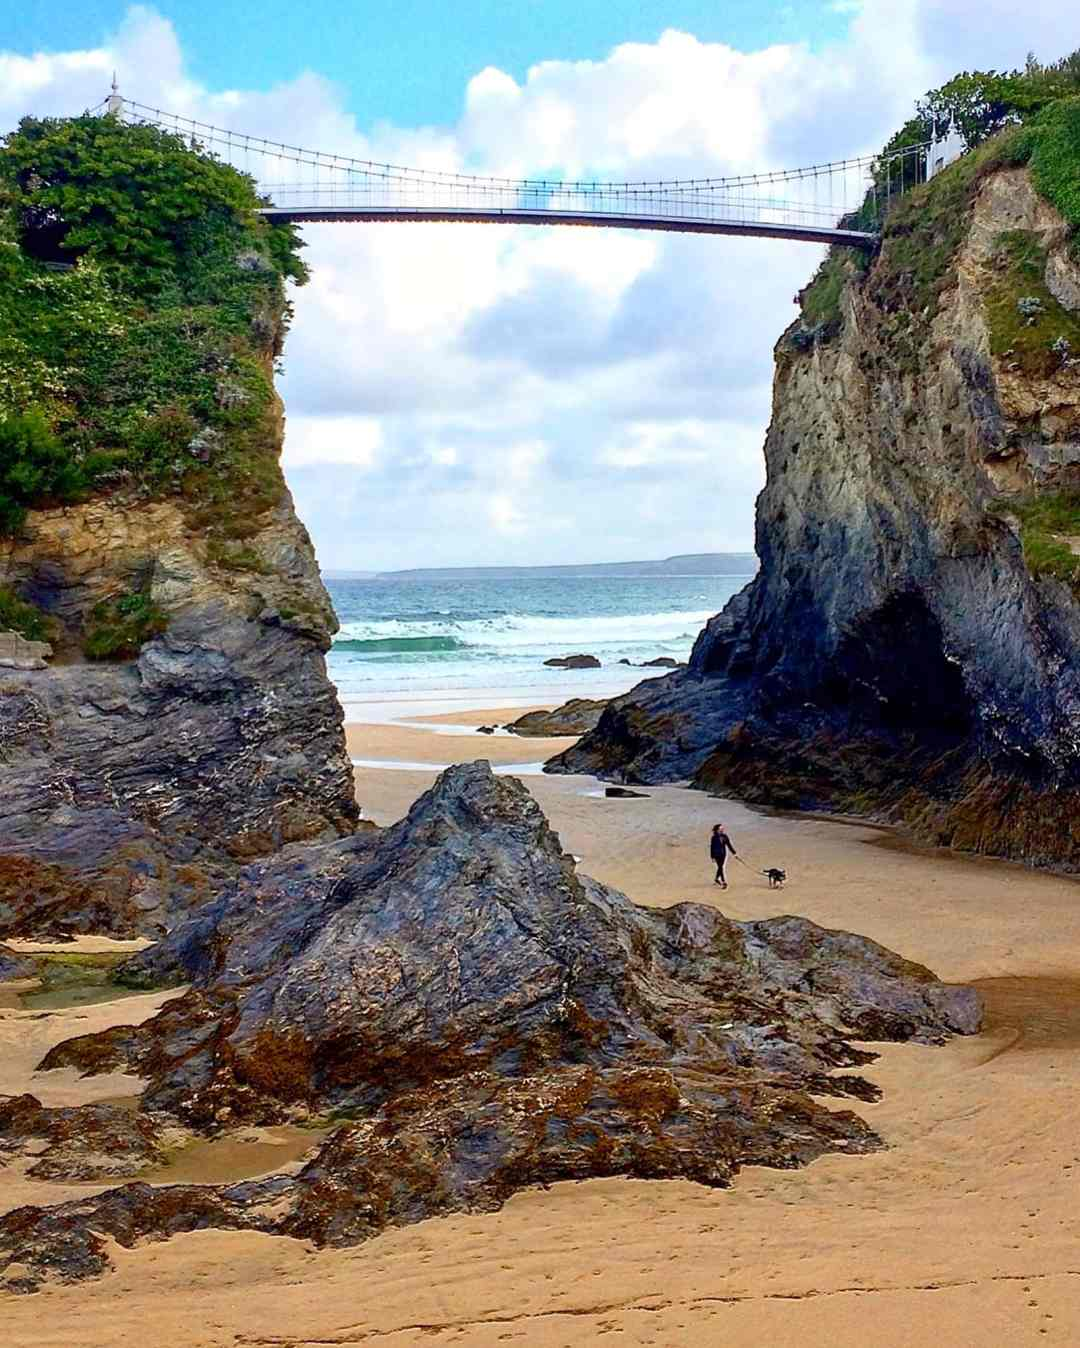 FINDING ADVENTURE IN CORNWALL